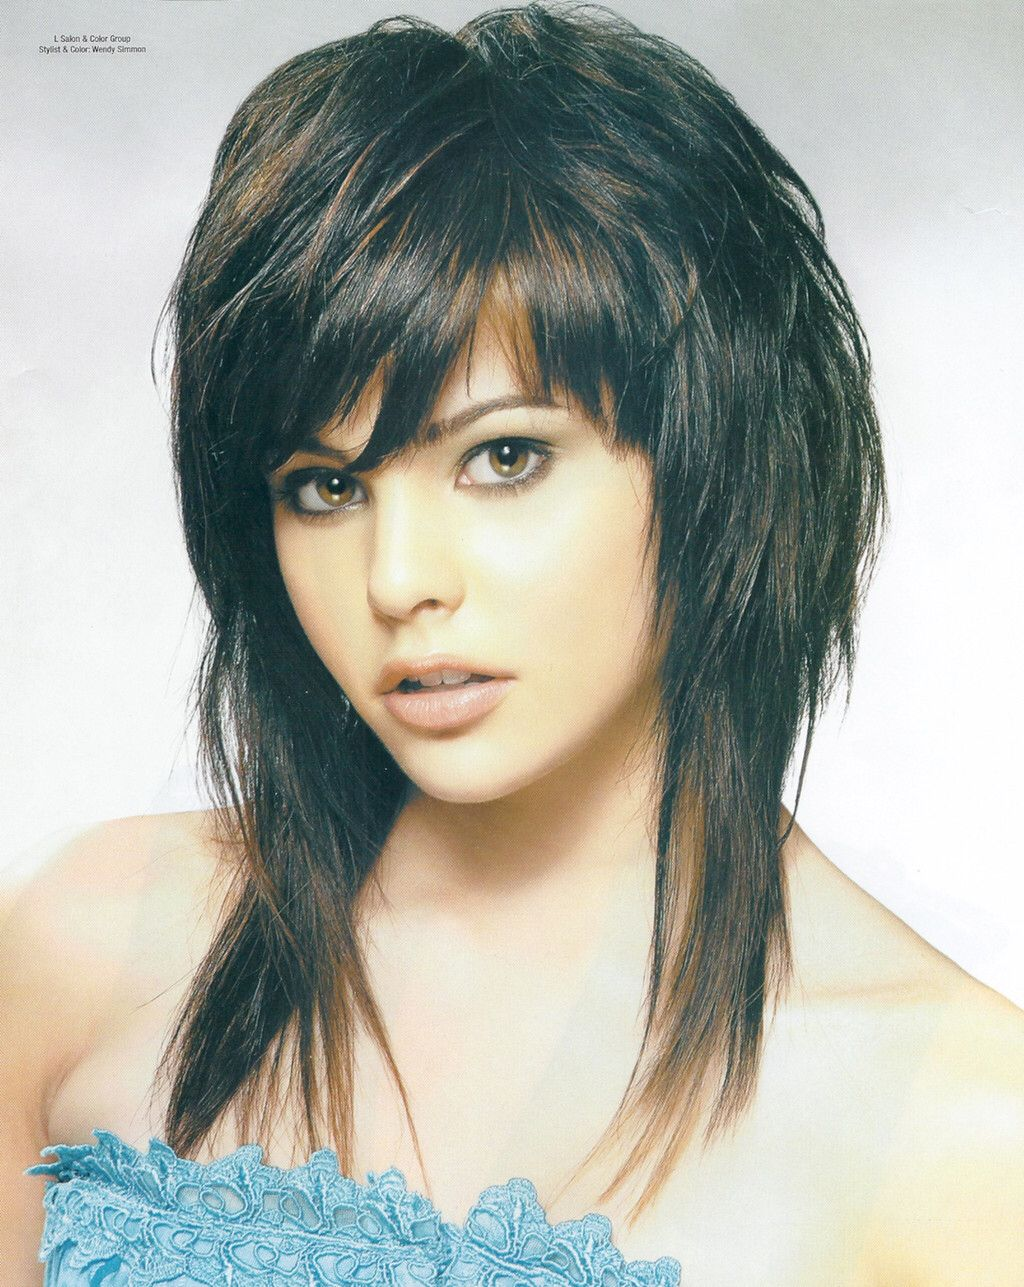 Image From Http Girliehairstyle Com Wp Content Uploads 2015 06 Shag Hairstyle 558c9f2f05612 1970s Shag Hair Medium Hair Styles Long Shag Hairstyles Punk Hair